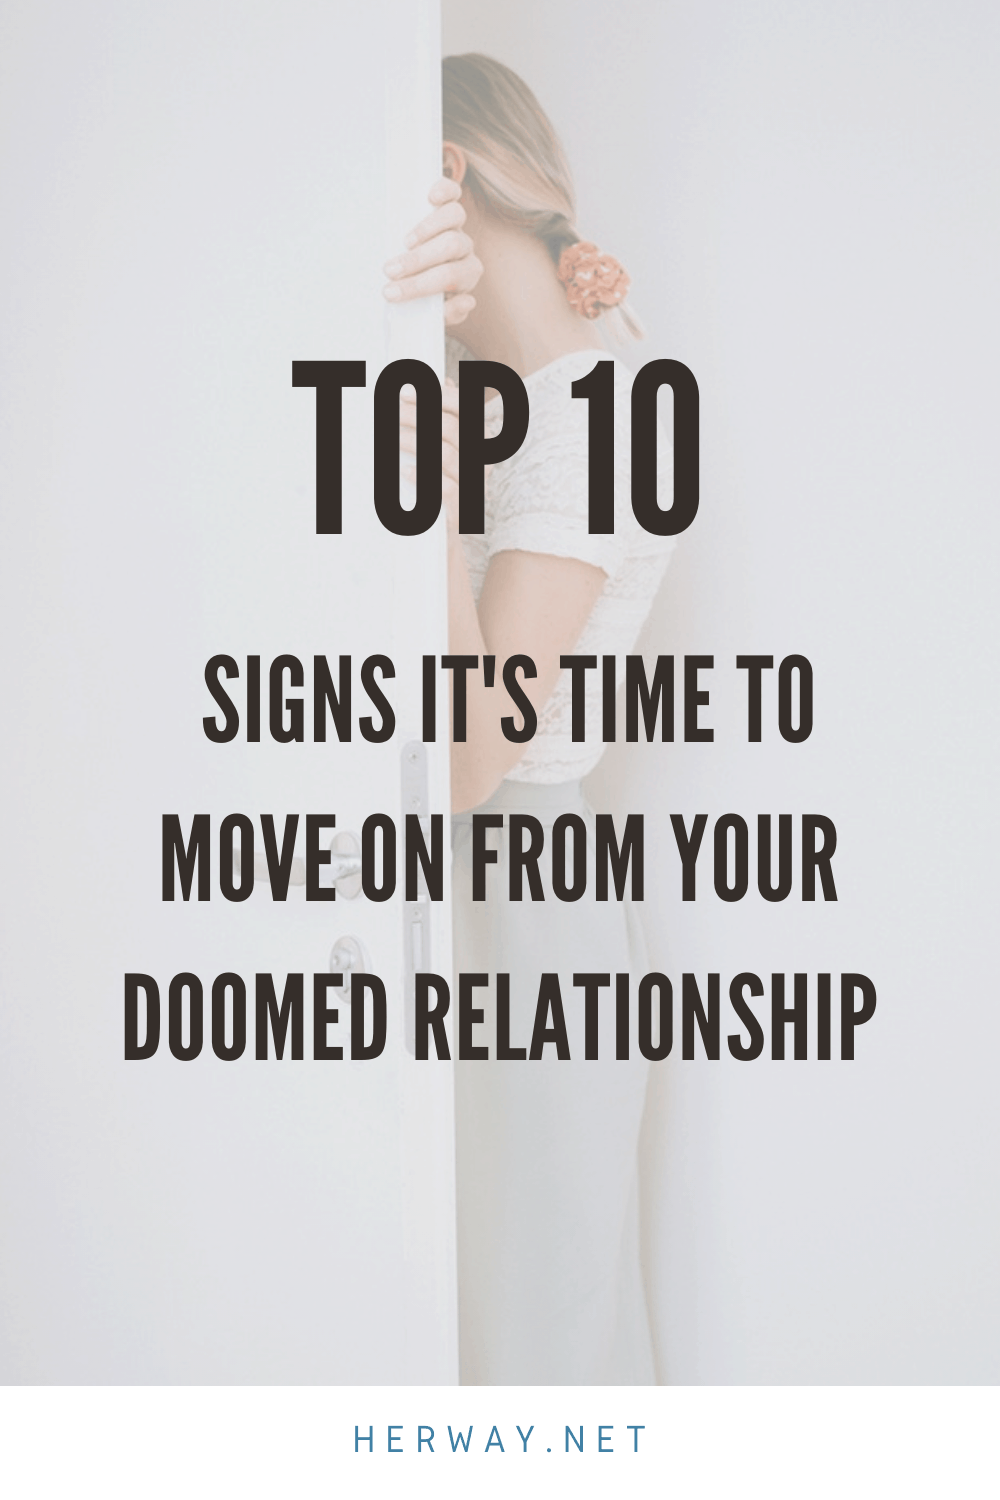 Top 10 Signs It's Time To Move On From Your Doomed Relationship Pinterest